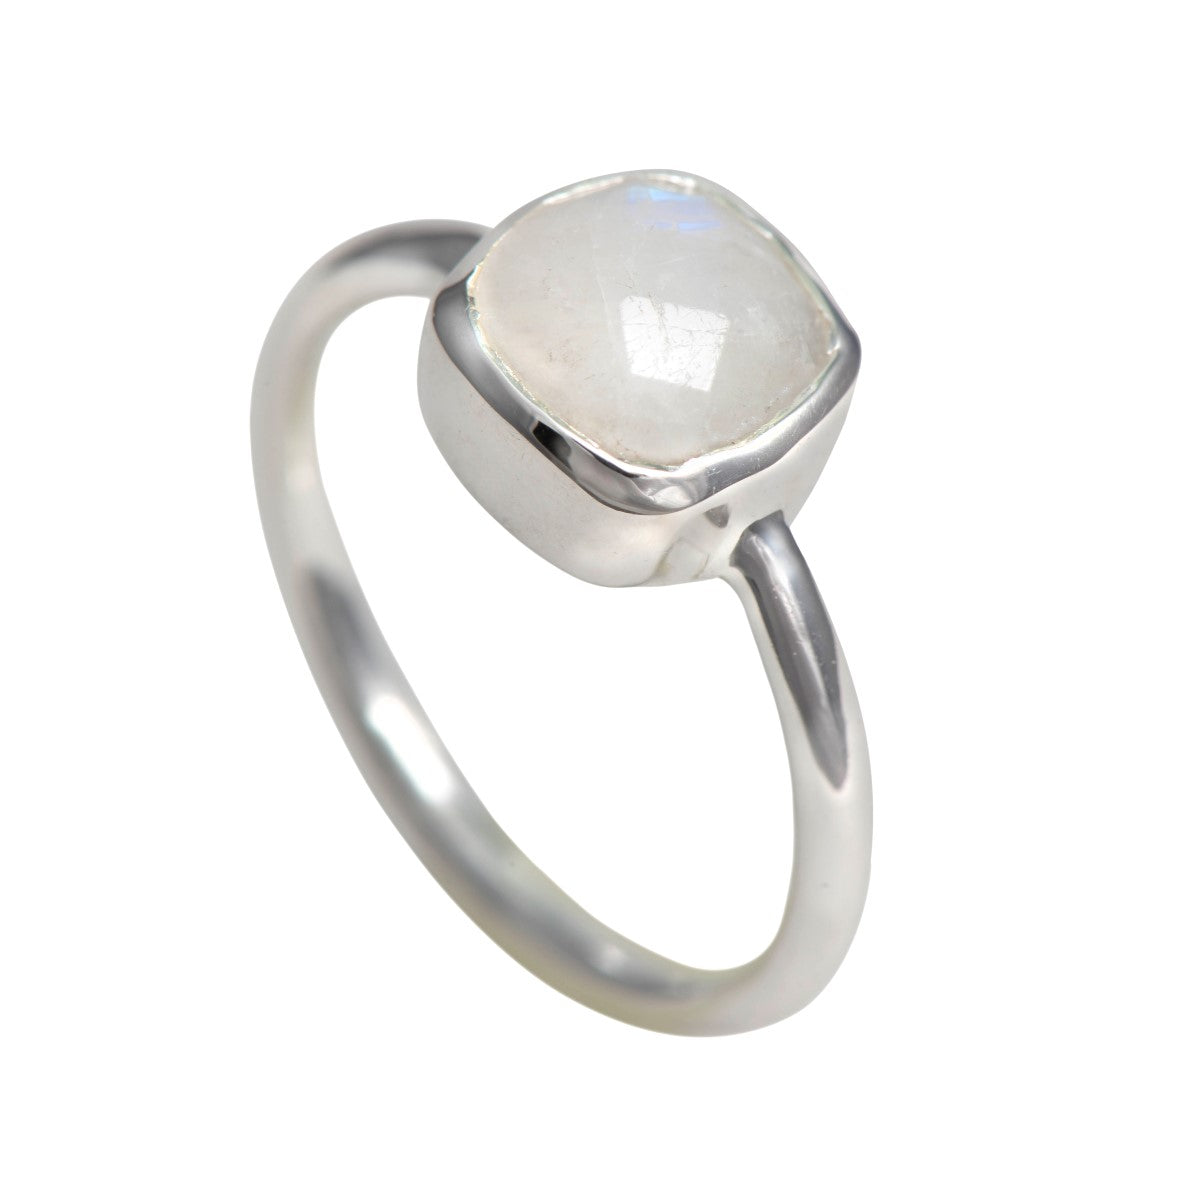 Faceted Square Cut Natural Gemstone Sterling Silver Solitaire Ring - Moonstone